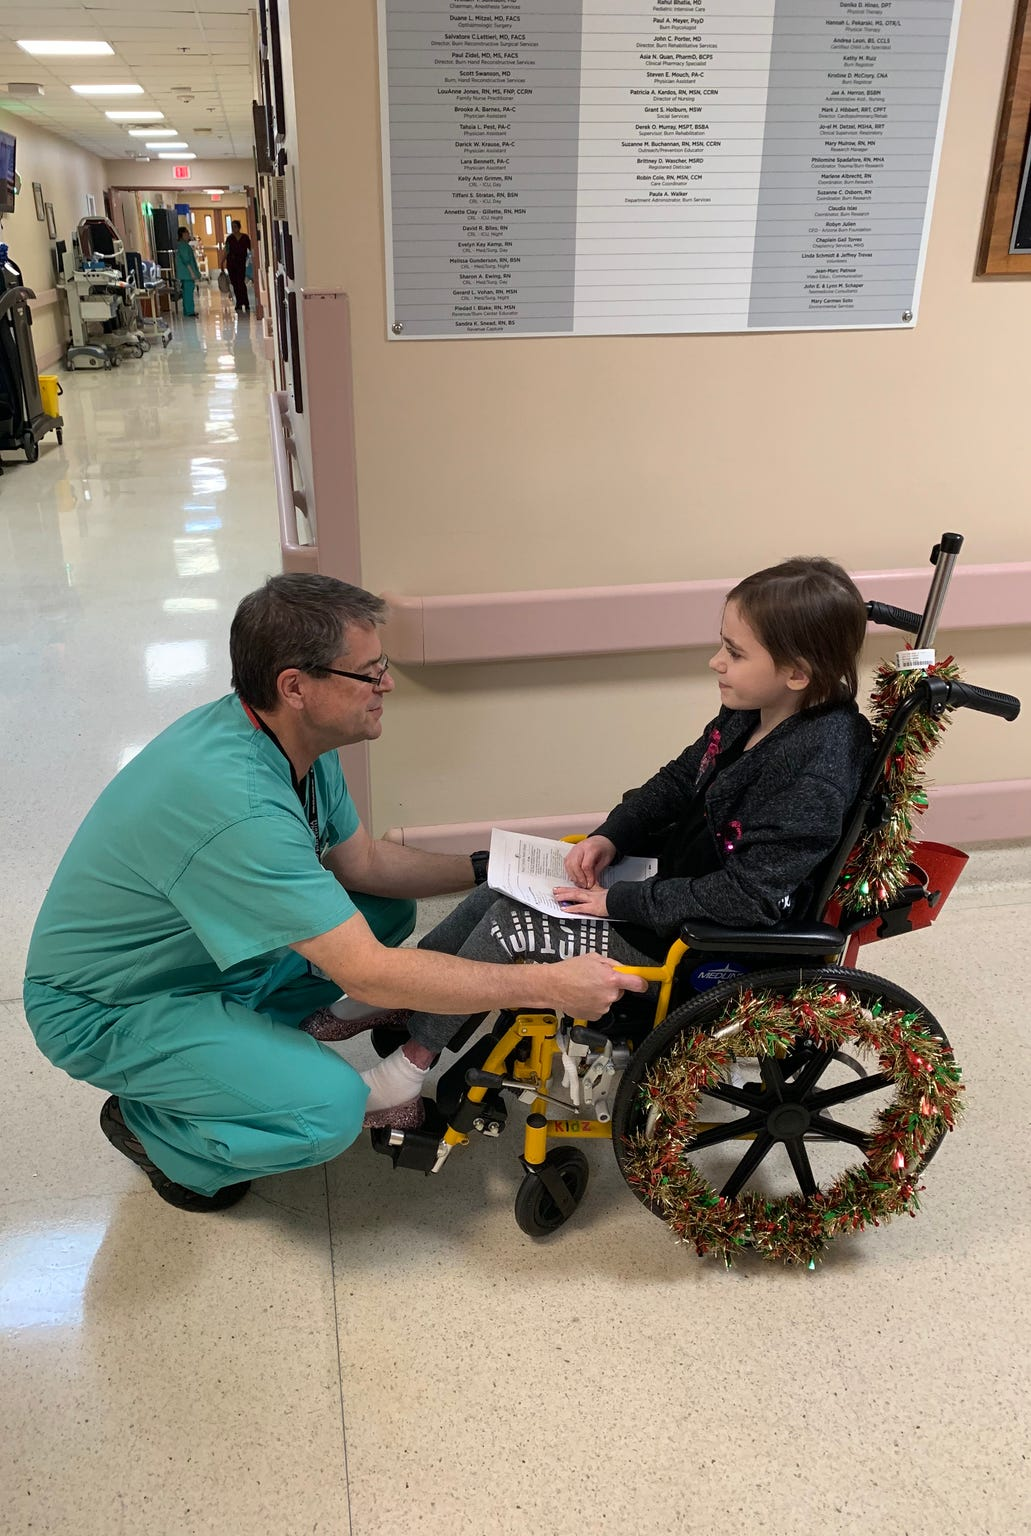 Dr. Kevin Foster, head of the Arizona Burn Center in Phoenix, says goodbye to 9-year-old Isabella McCune as she leaves after nine months in his care. The doctor pushed her wheelchair out to her parents' car.